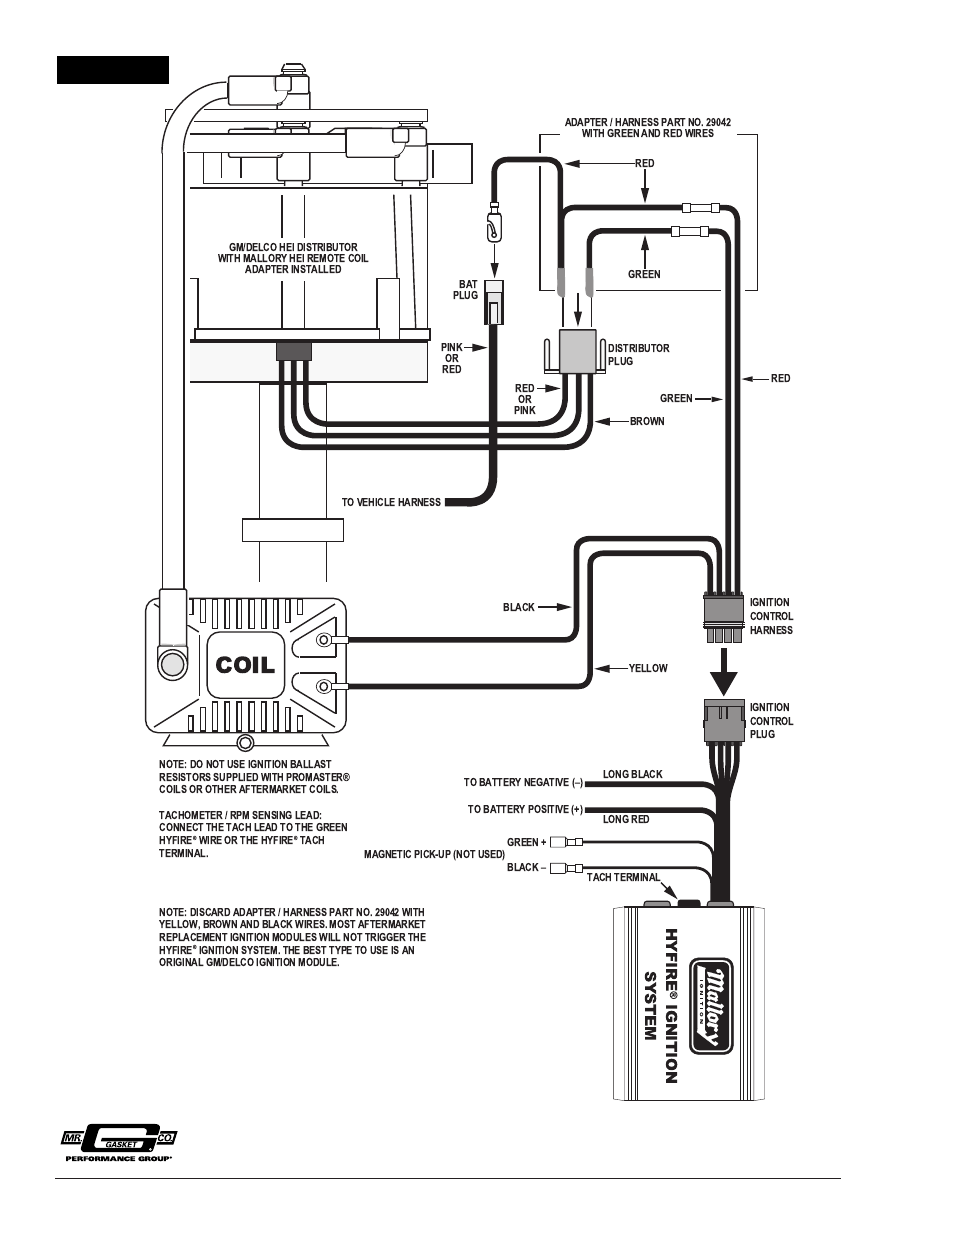 Pertronix Ignitor Wiring Diagram For Installations That Don ... on mallory tachometer wiring diagram, vw ignition wiring diagram, ignition coil wiring diagram, distributor diagram, msd ignition wiring diagram, willys jeep ignition wiring diagram, ignition coil circuit diagram, ignition ballast resistor wiring diagram, 67 mustang ignition wiring diagram, mg midget ignition wiring diagram, points ignition wiring diagram, ford duraspark ignition wiring diagram,